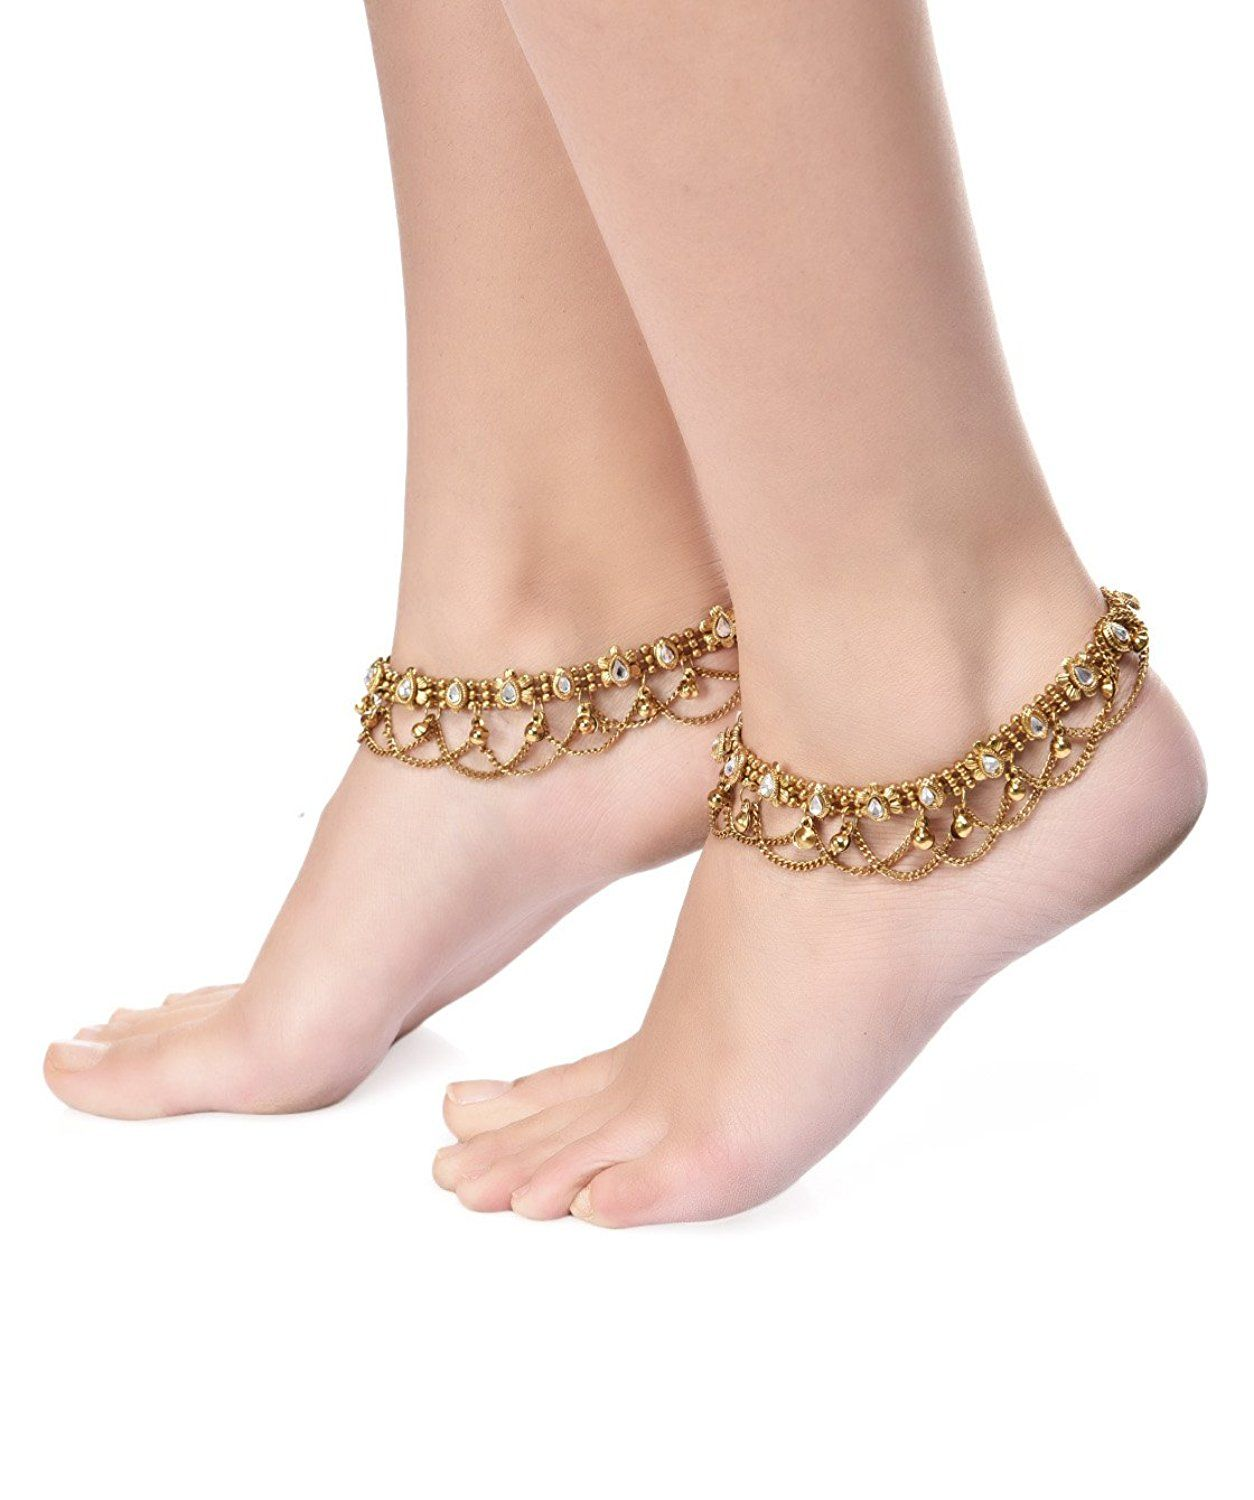 anklets painjan payal anklet pinterest hayagi online honest on prices pin for women at shopping by